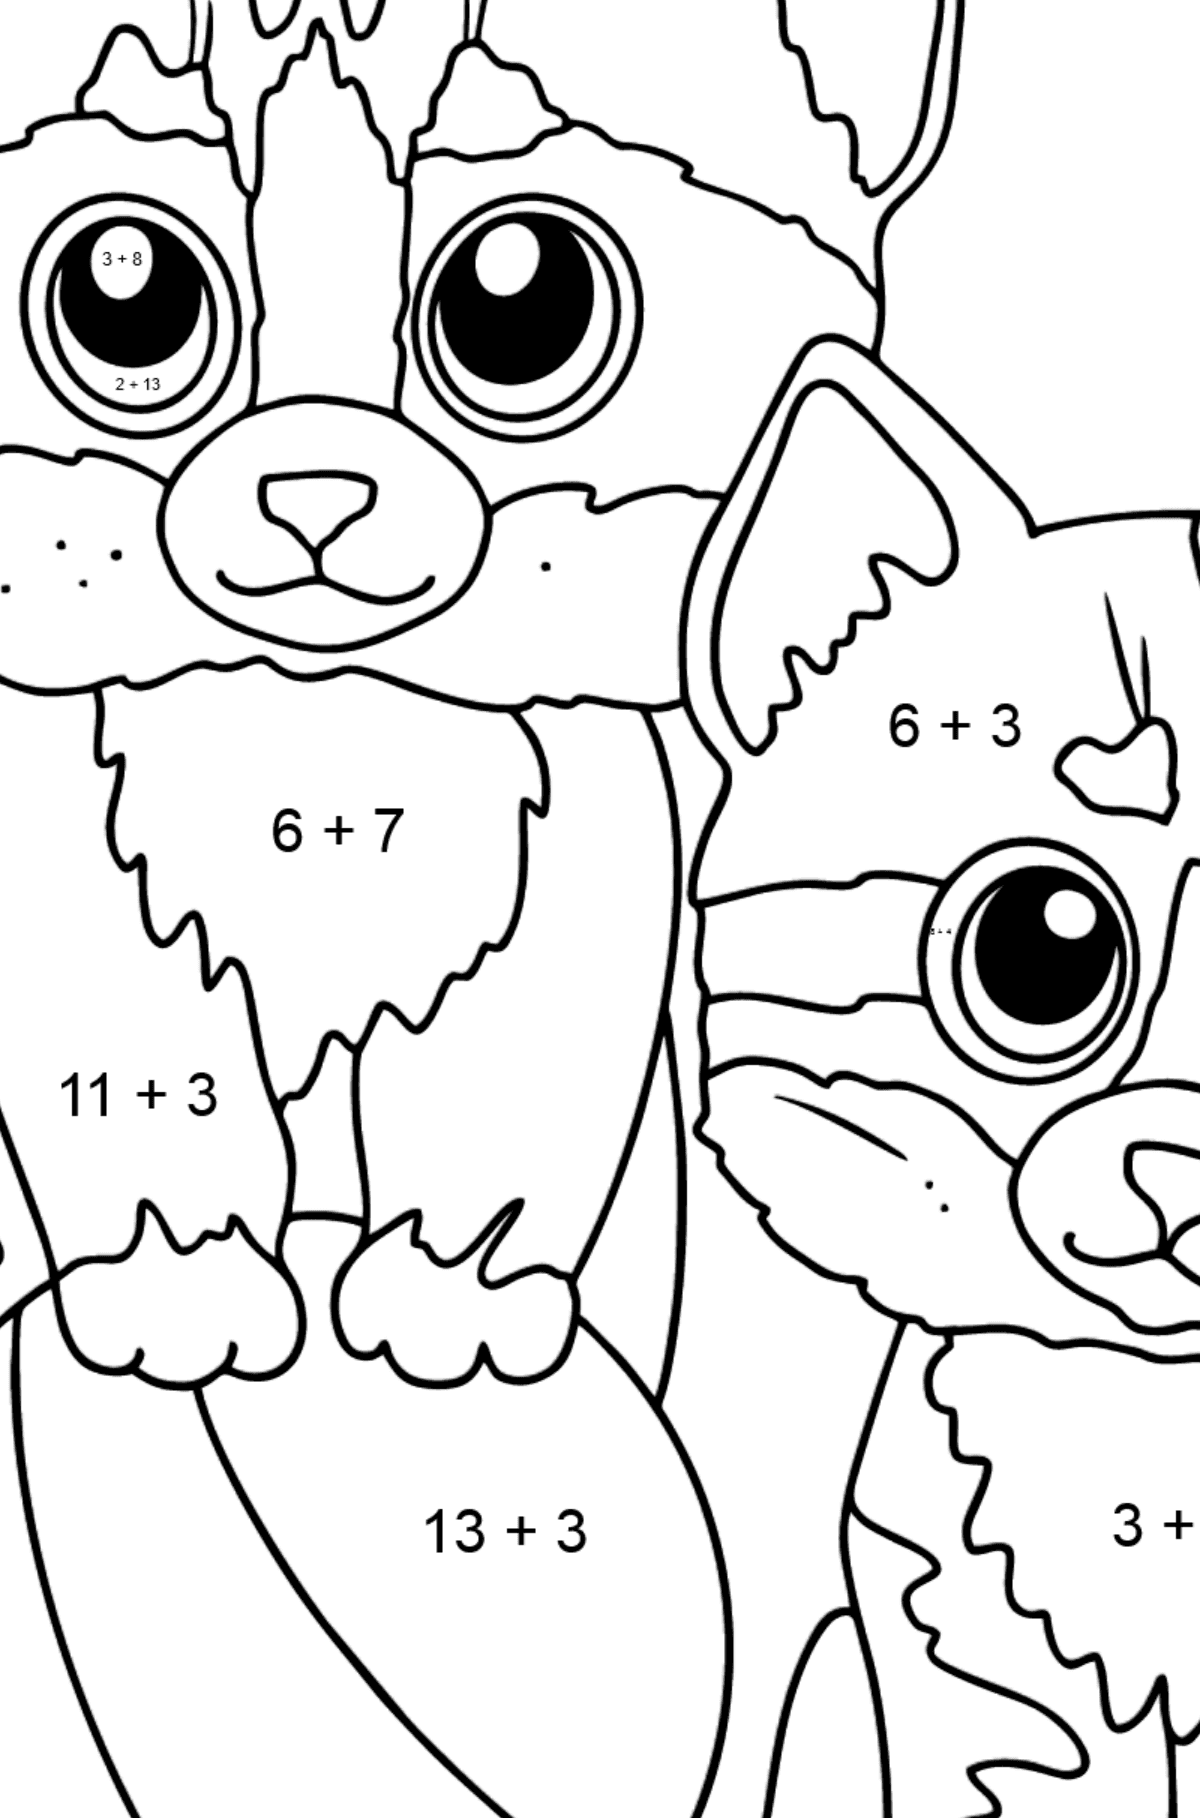 Coloring Page - Two Friendly Kittens Playing with a Ball - Math Coloring - Addition for Kids